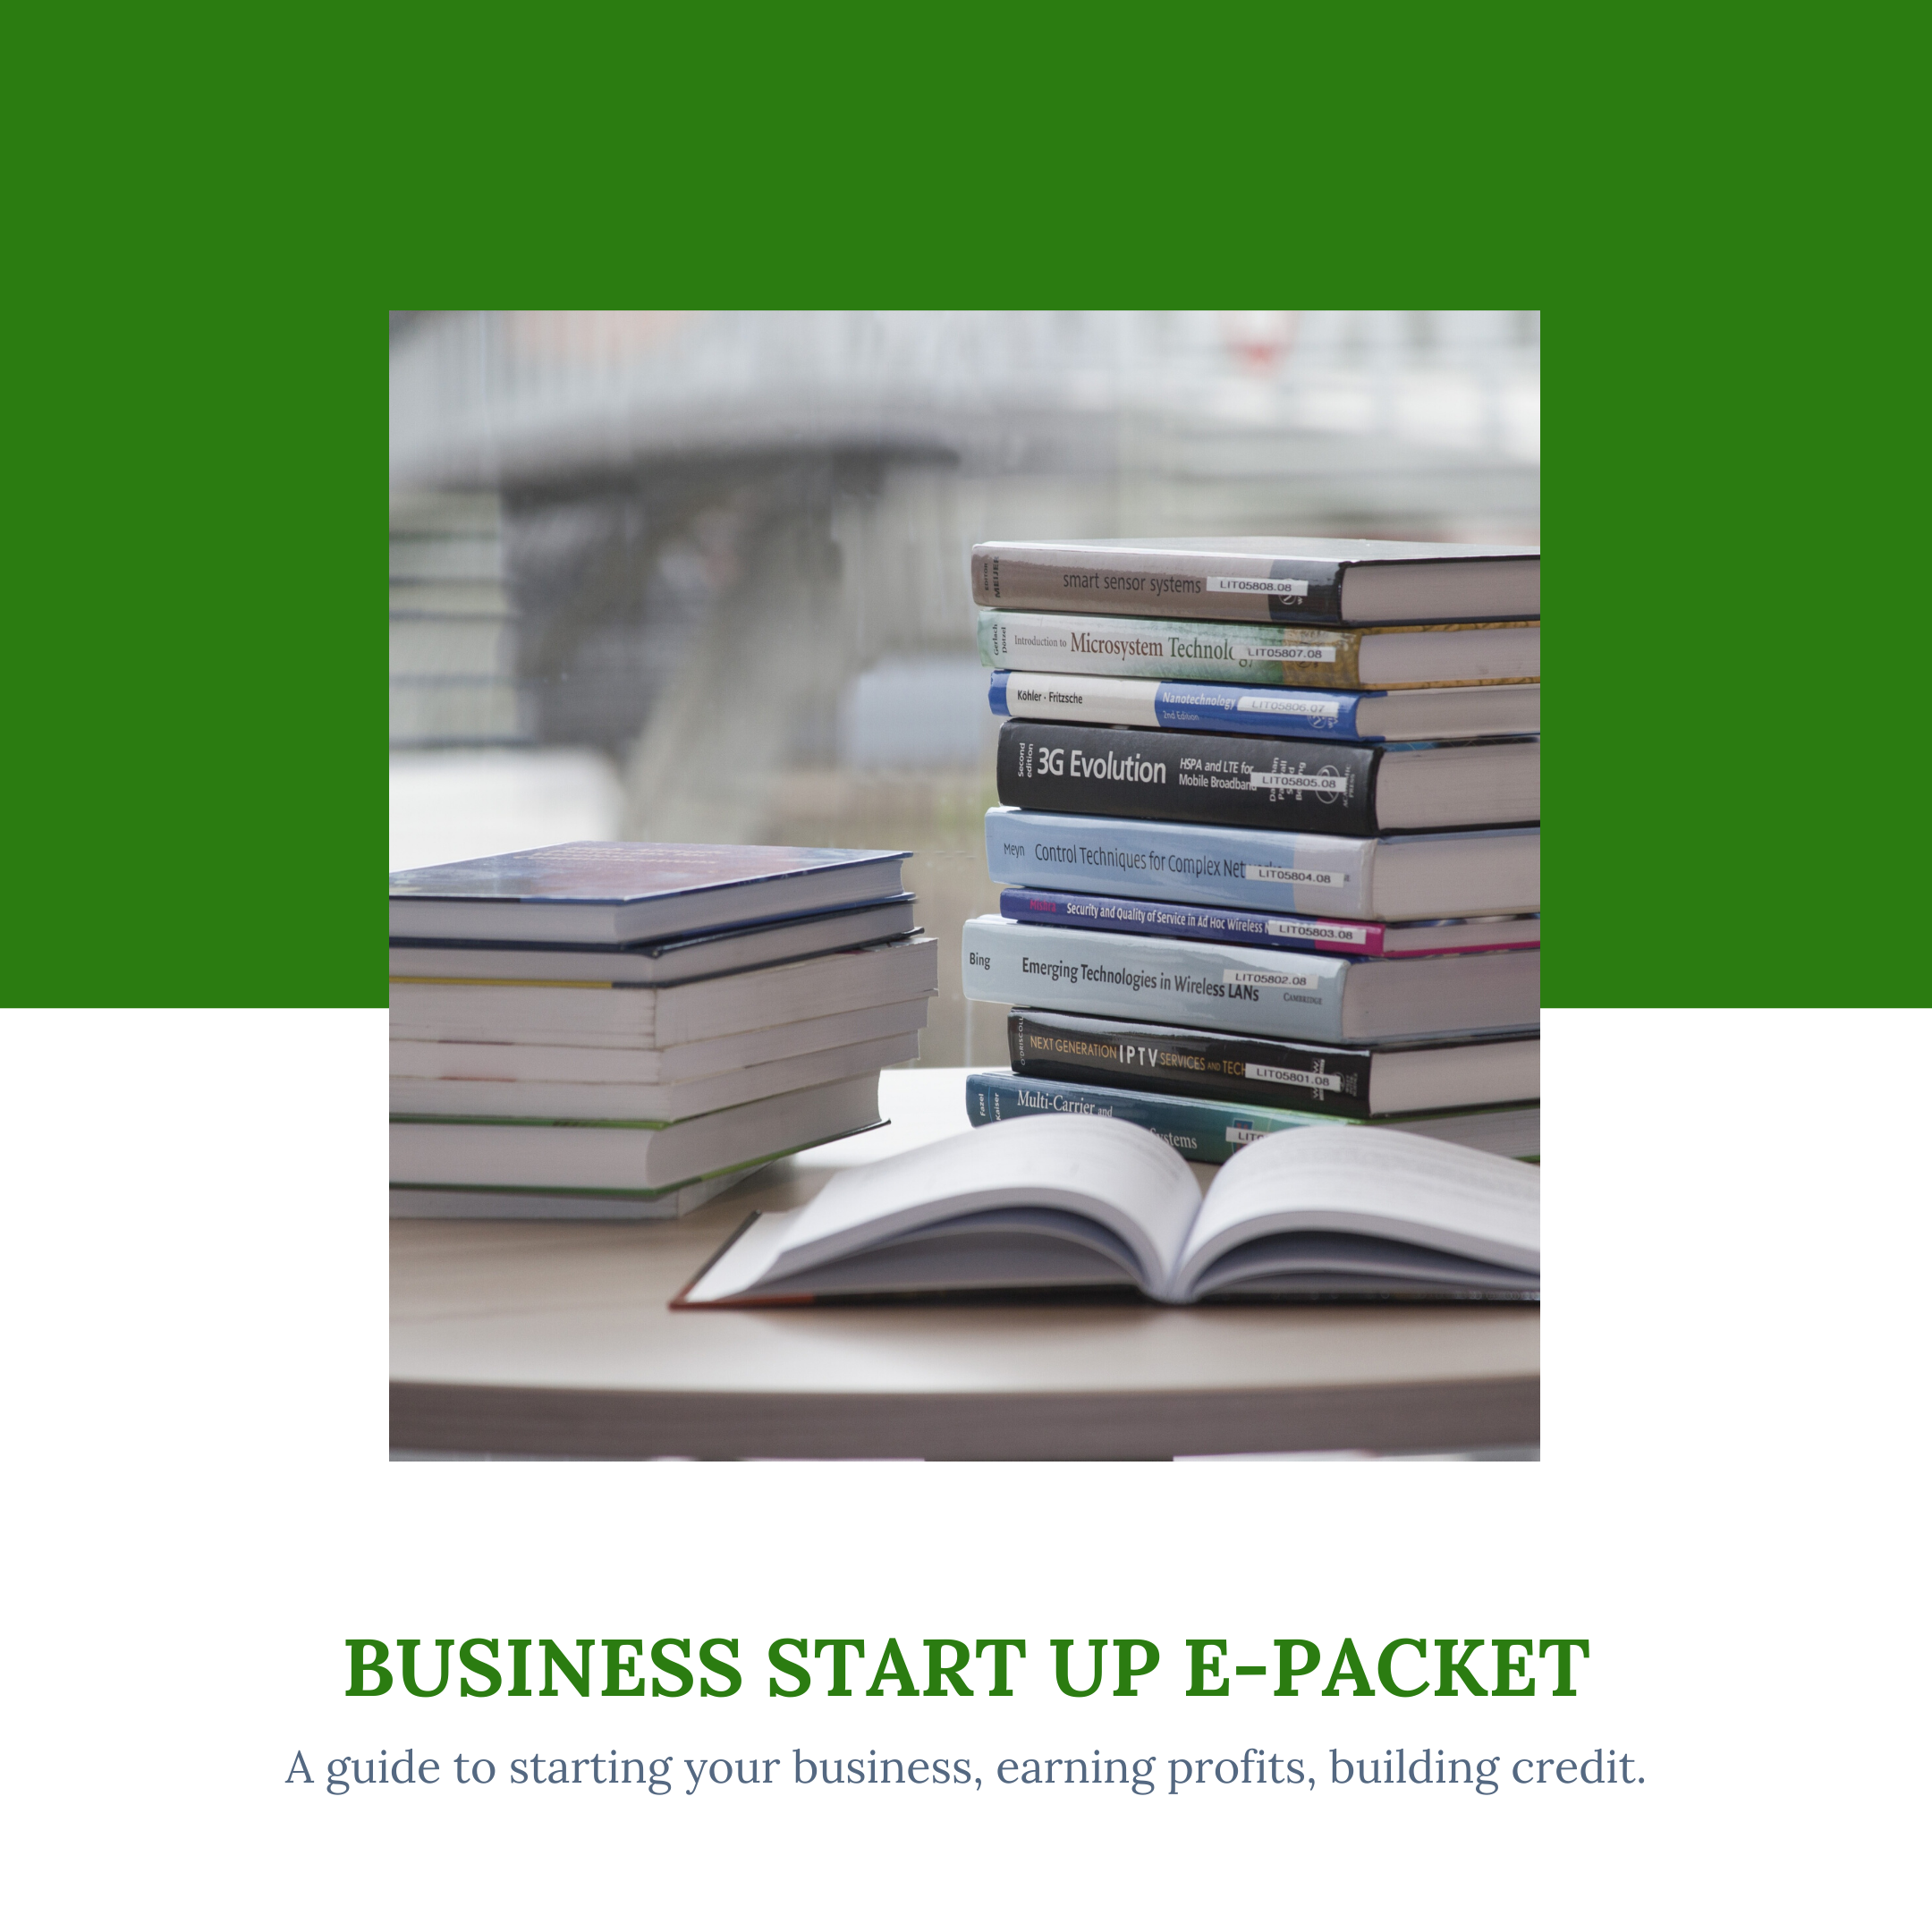 Start-Up Business E- Packet - TS Skin Co.